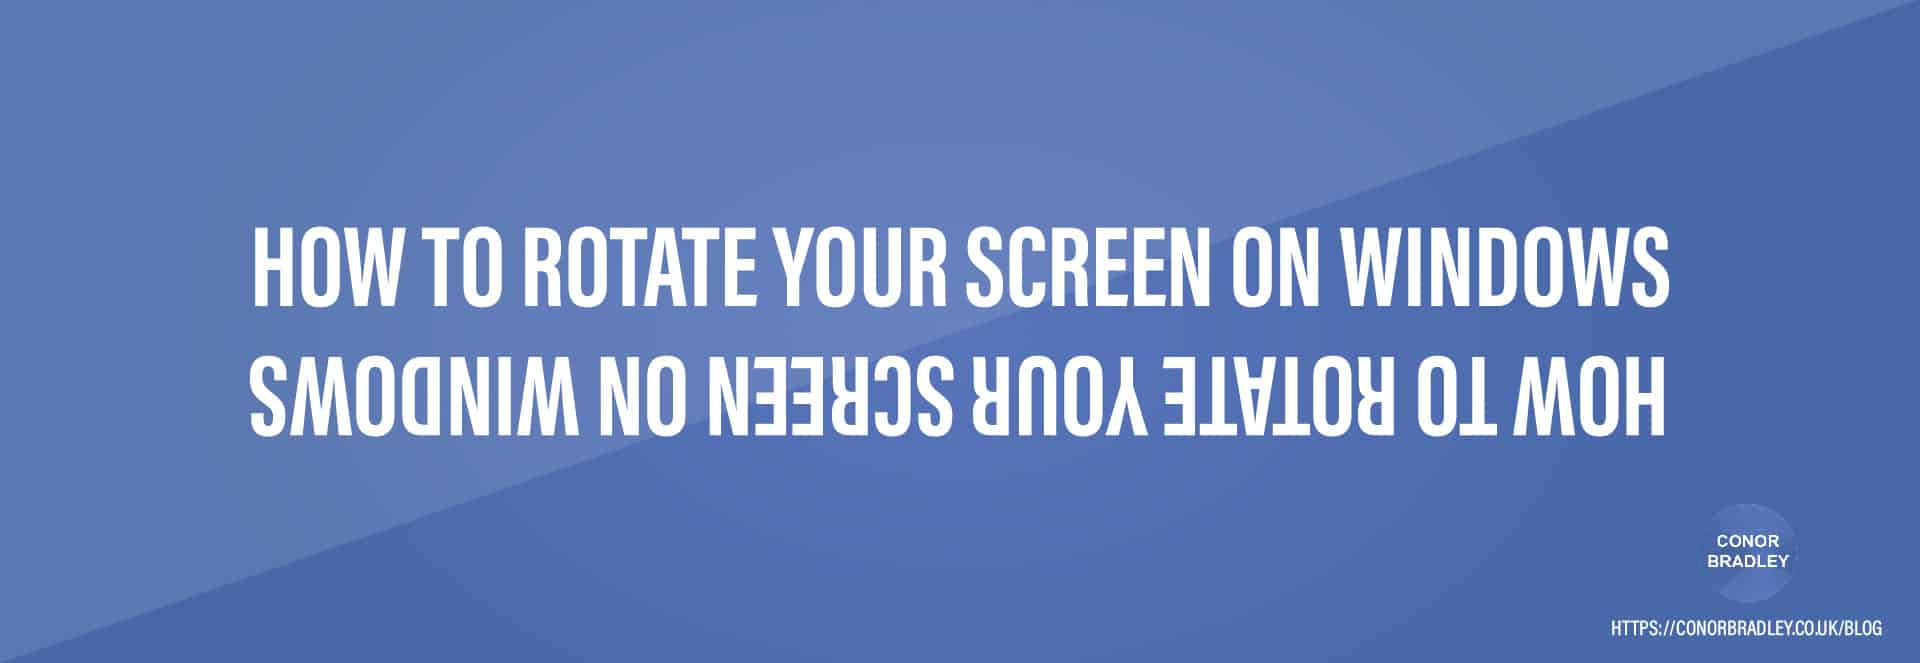 How To Rotate Your Screen On Windows